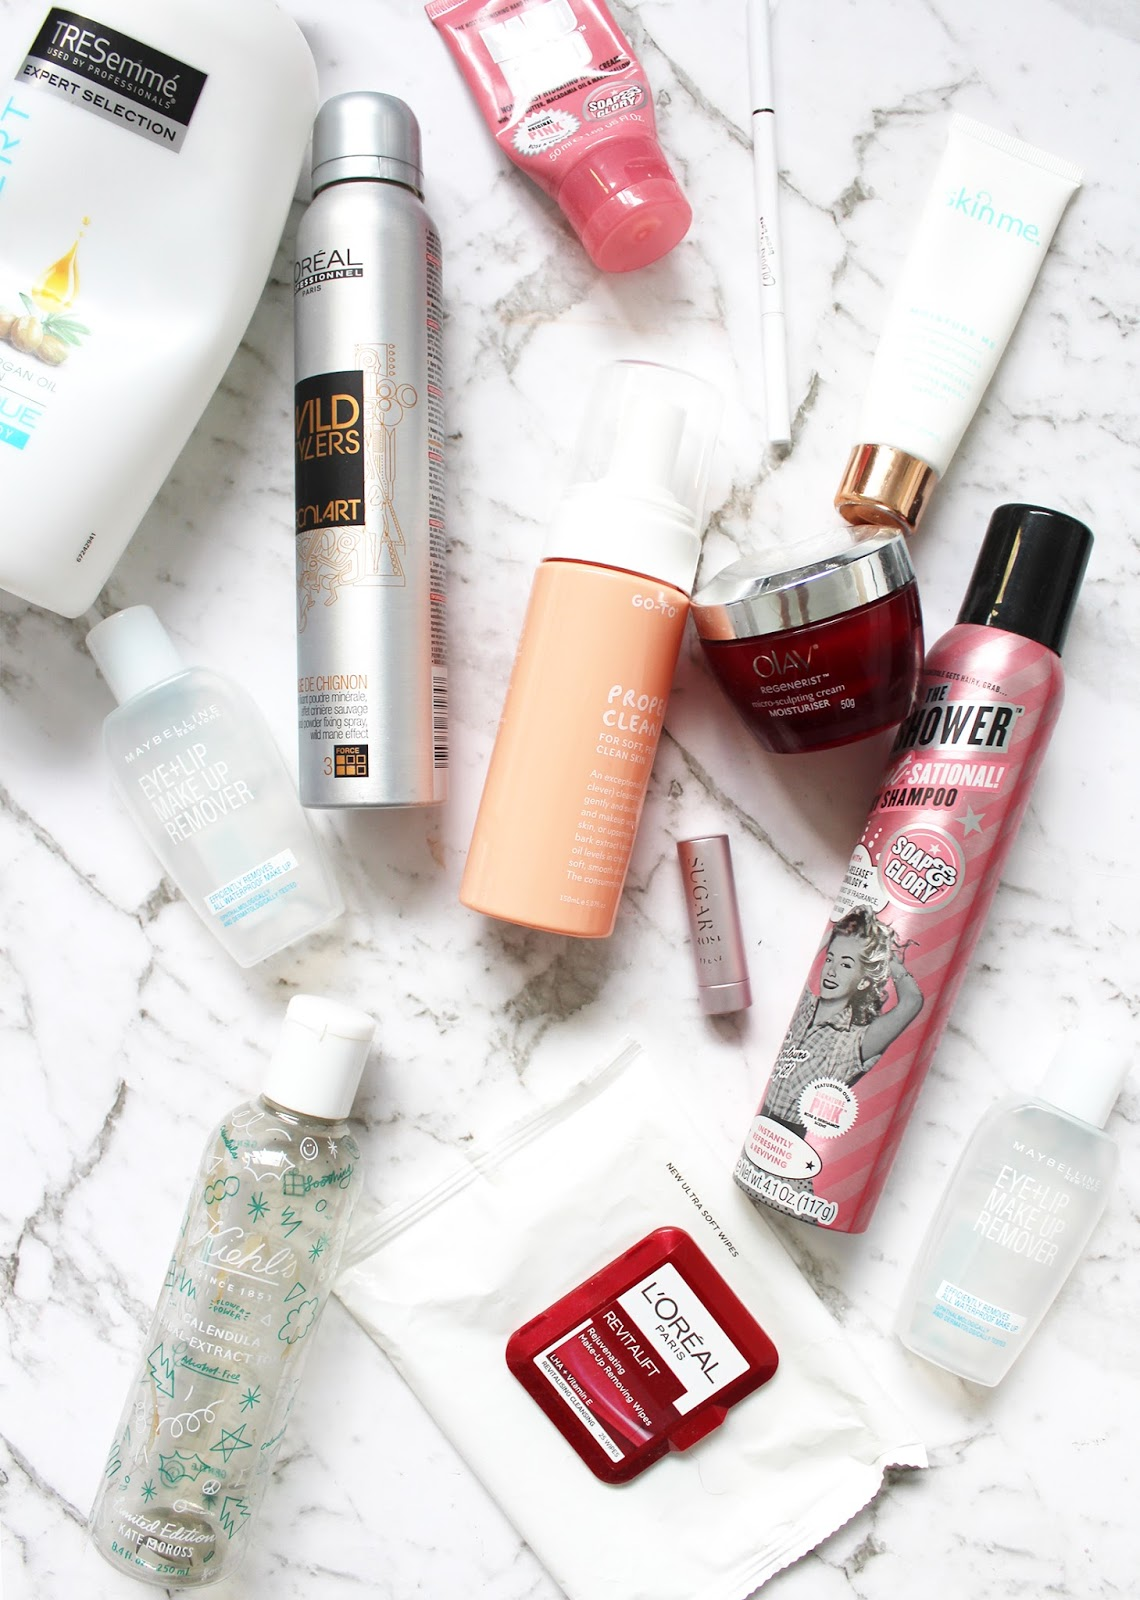 EMPTIES | March '18 - CassandraMyee